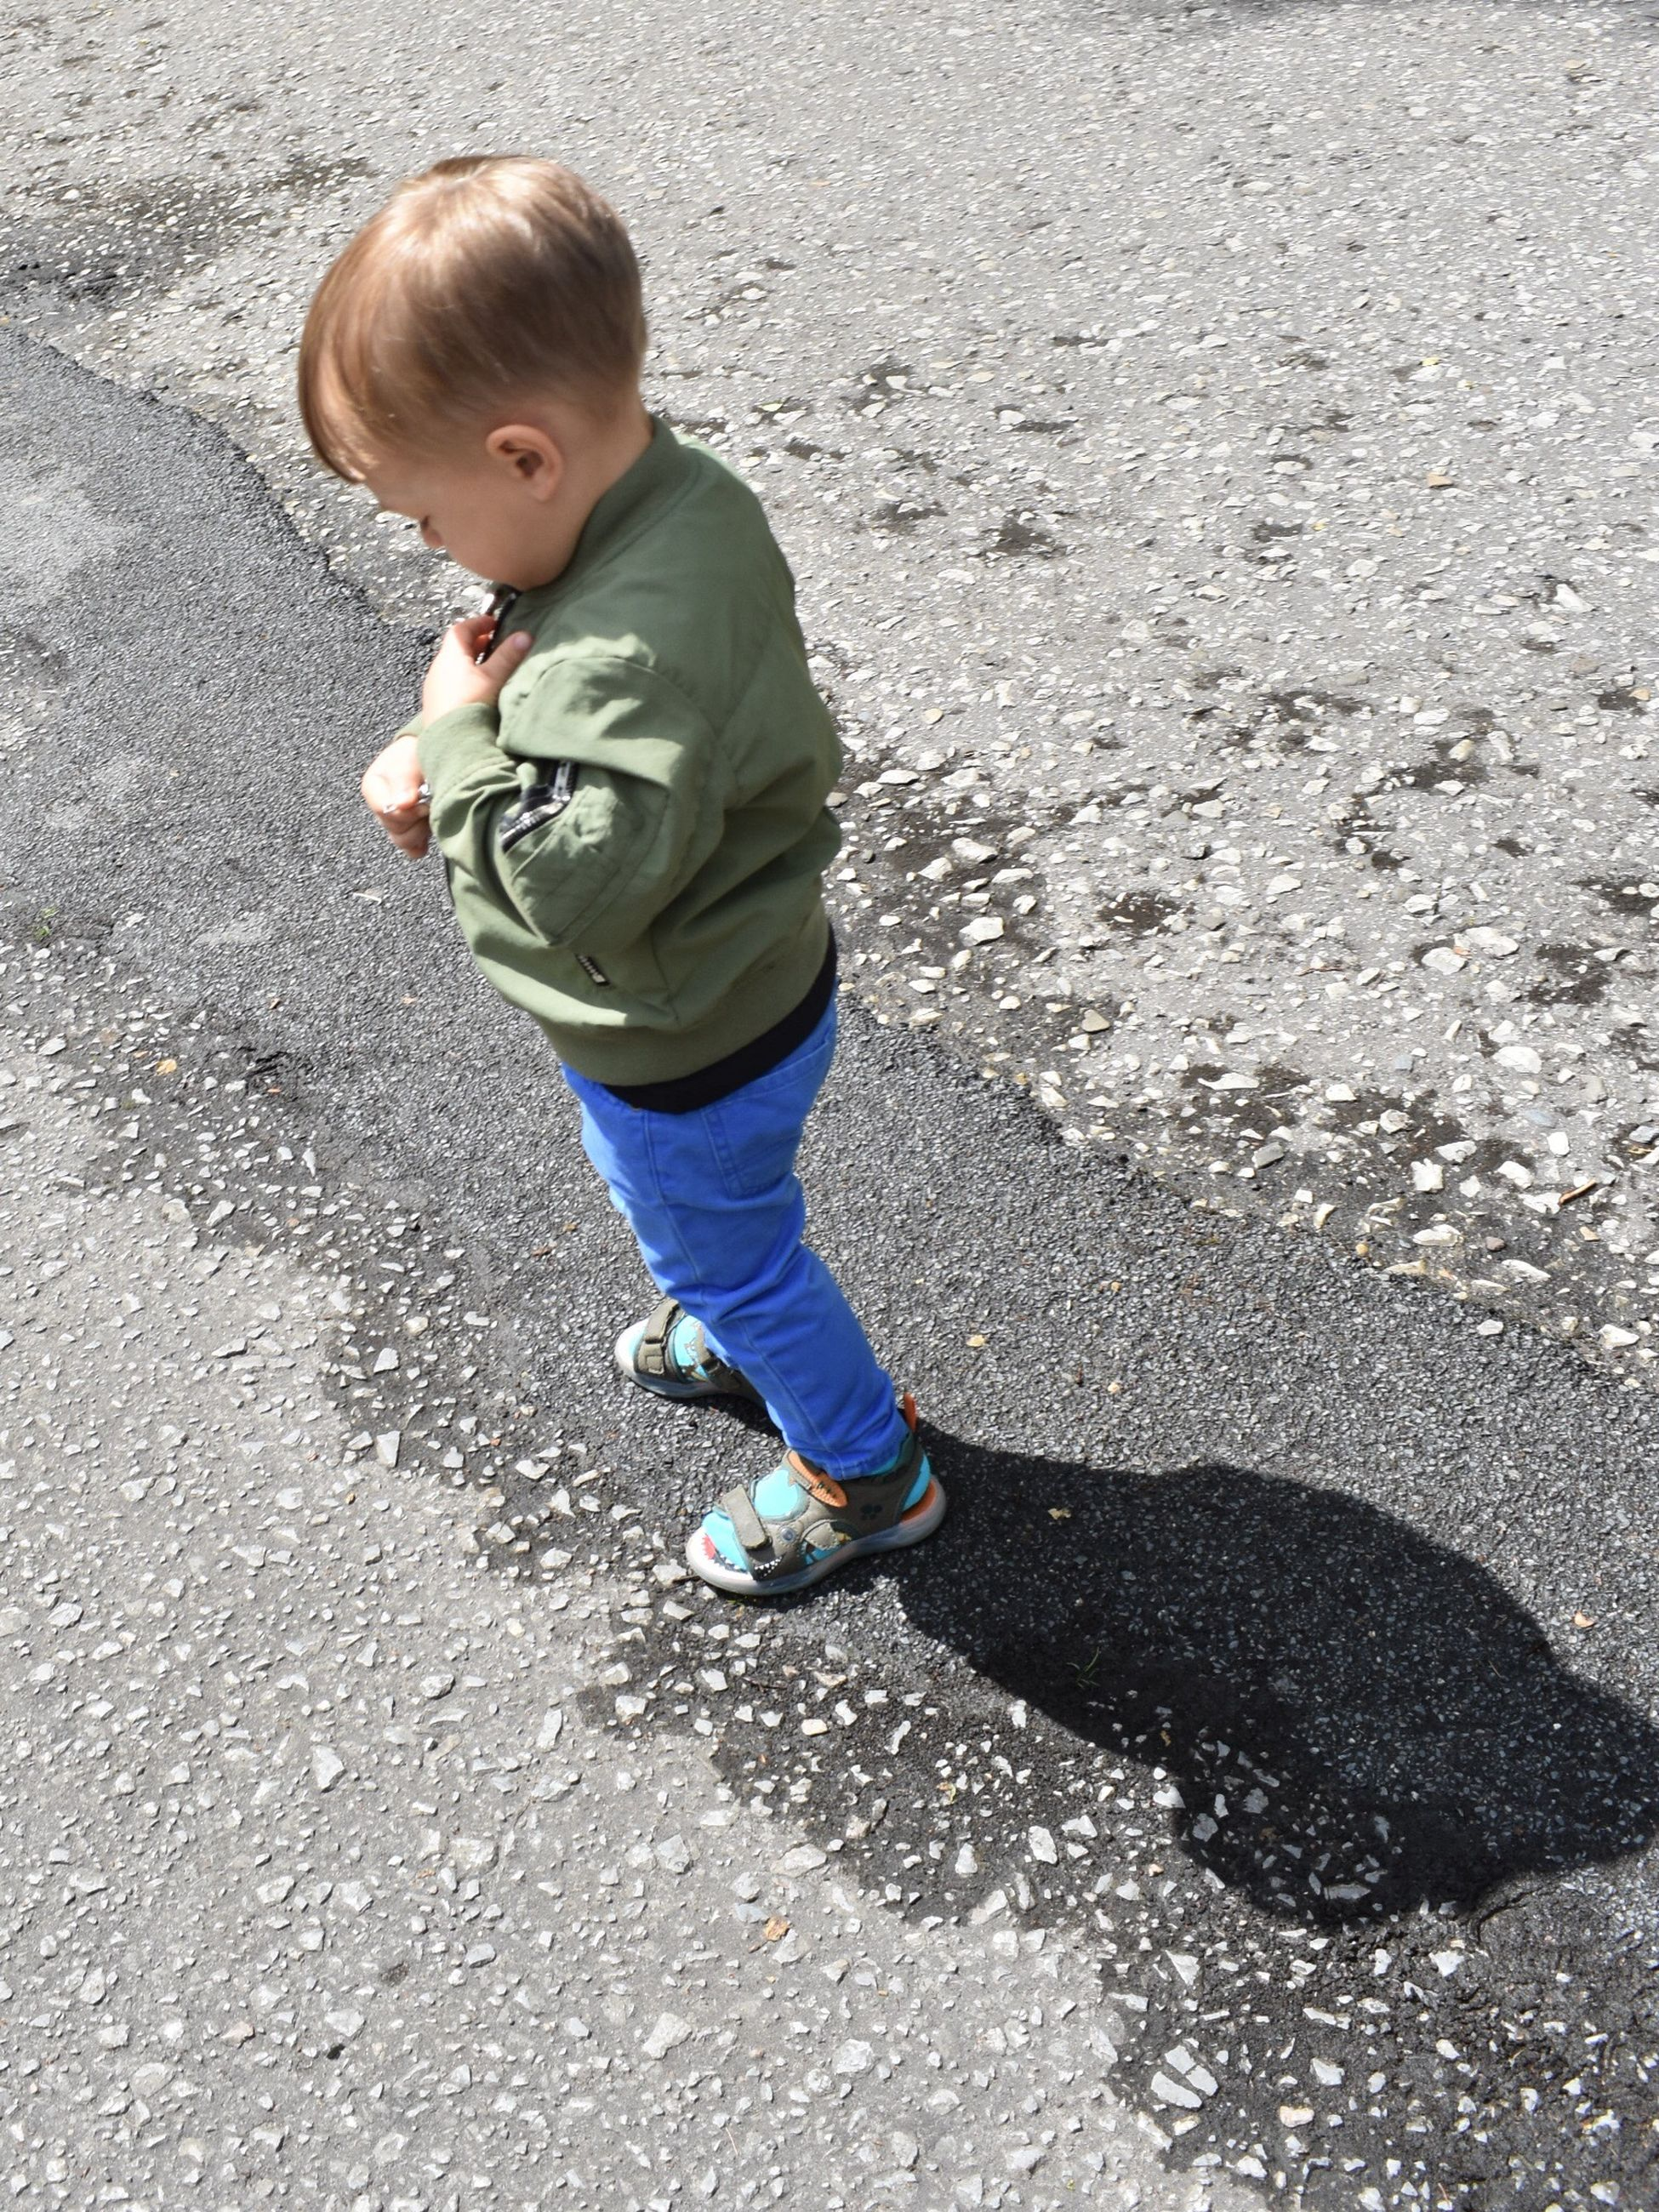 baby, full length, childhood, innocence, high angle view, one person, day, casual clothing, shadow, outdoors, babies only, real people, people